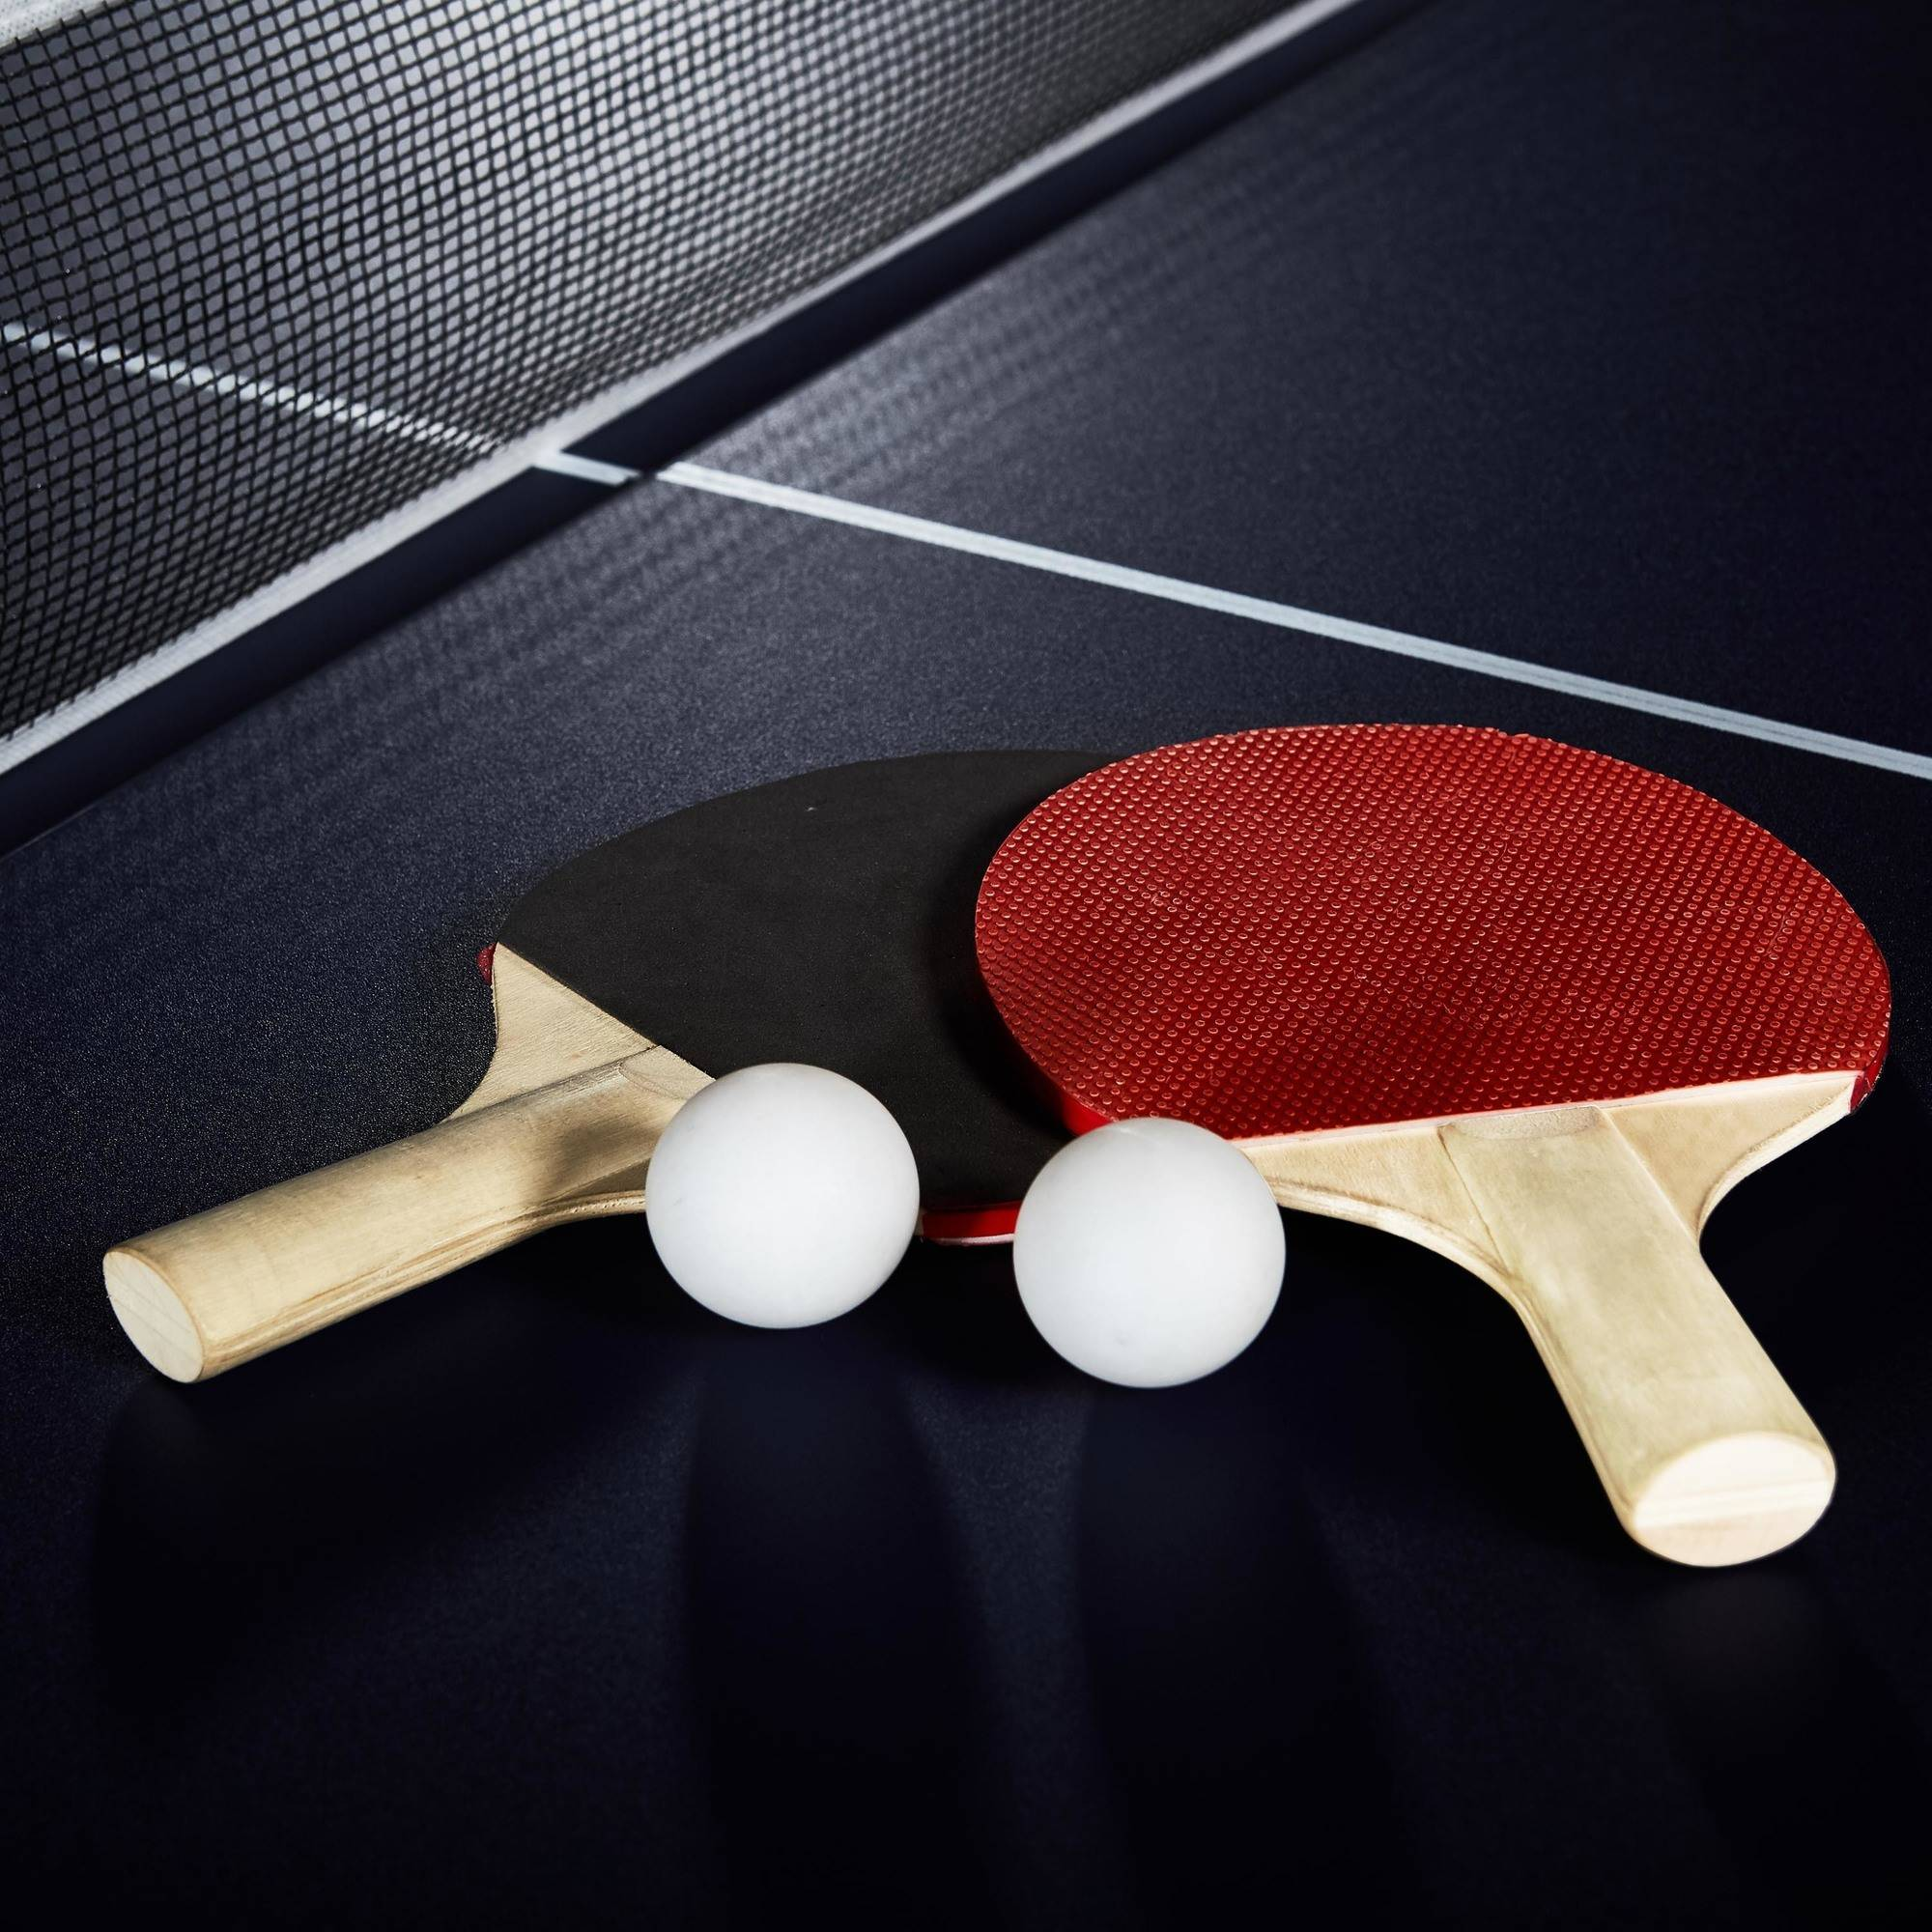 MD Sports Official Size Table Tennis Table, with Paddle and Balls ...